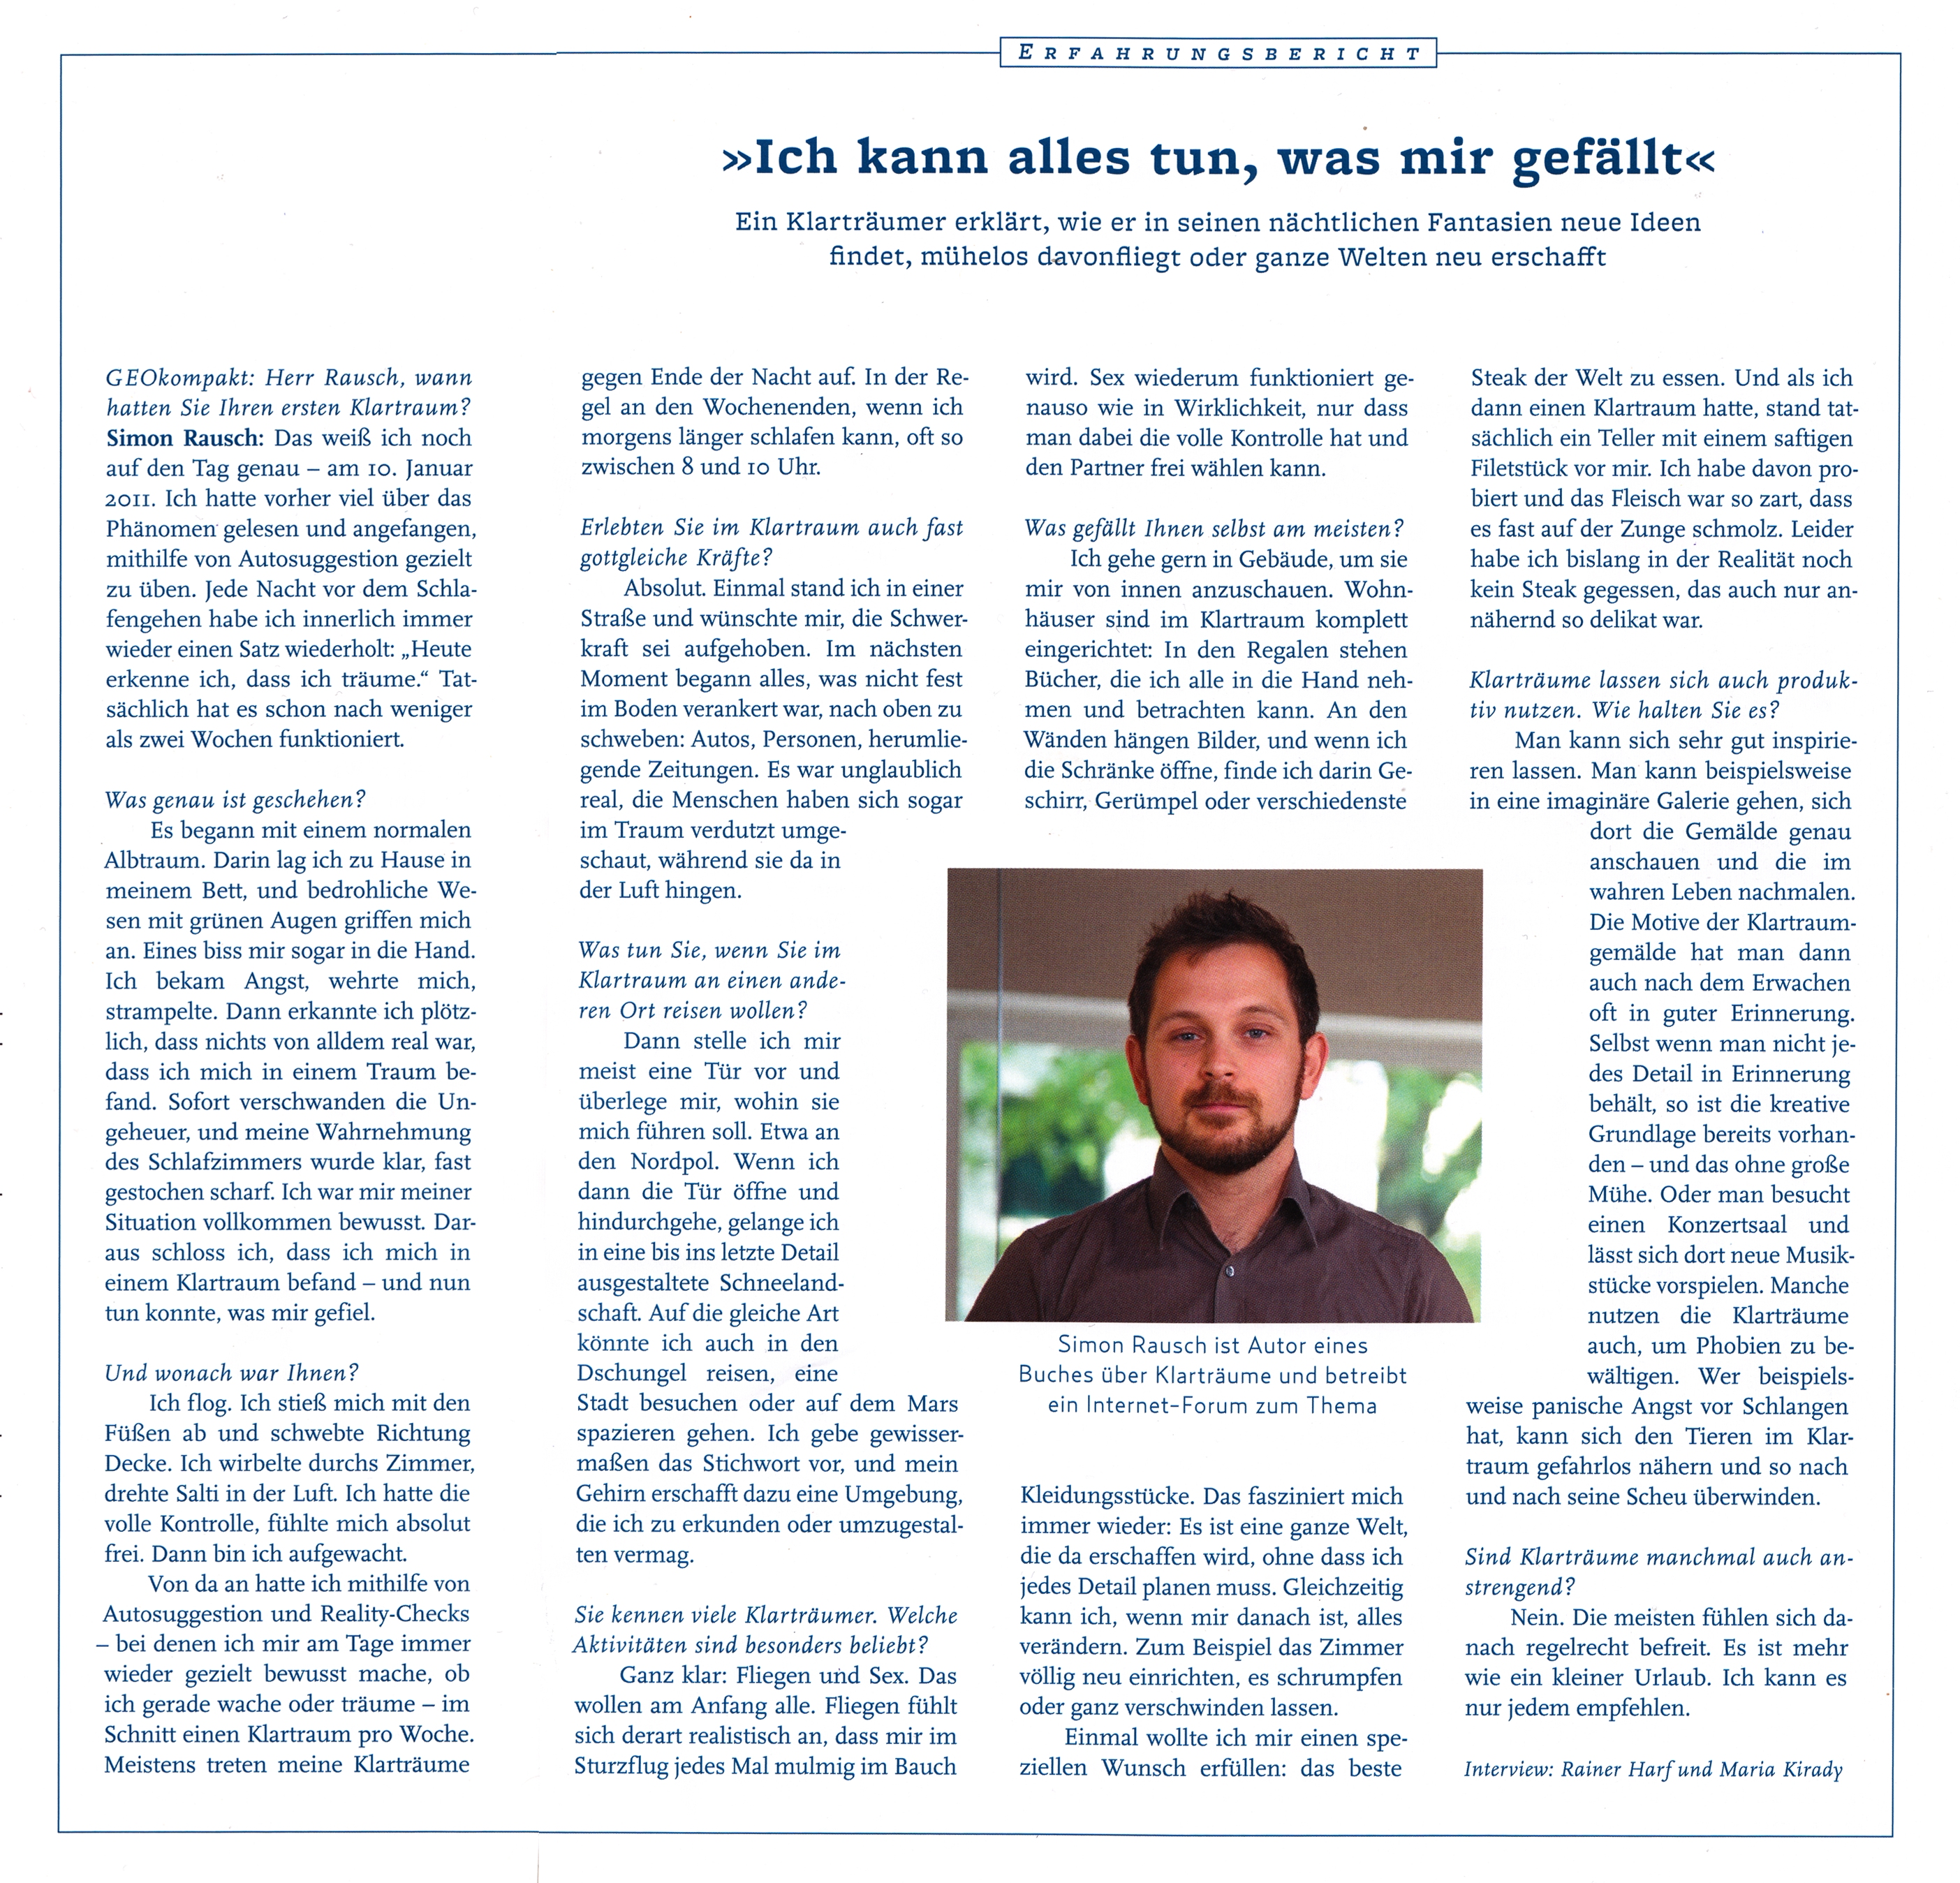 GEOkompakt Simon Rausch Interview